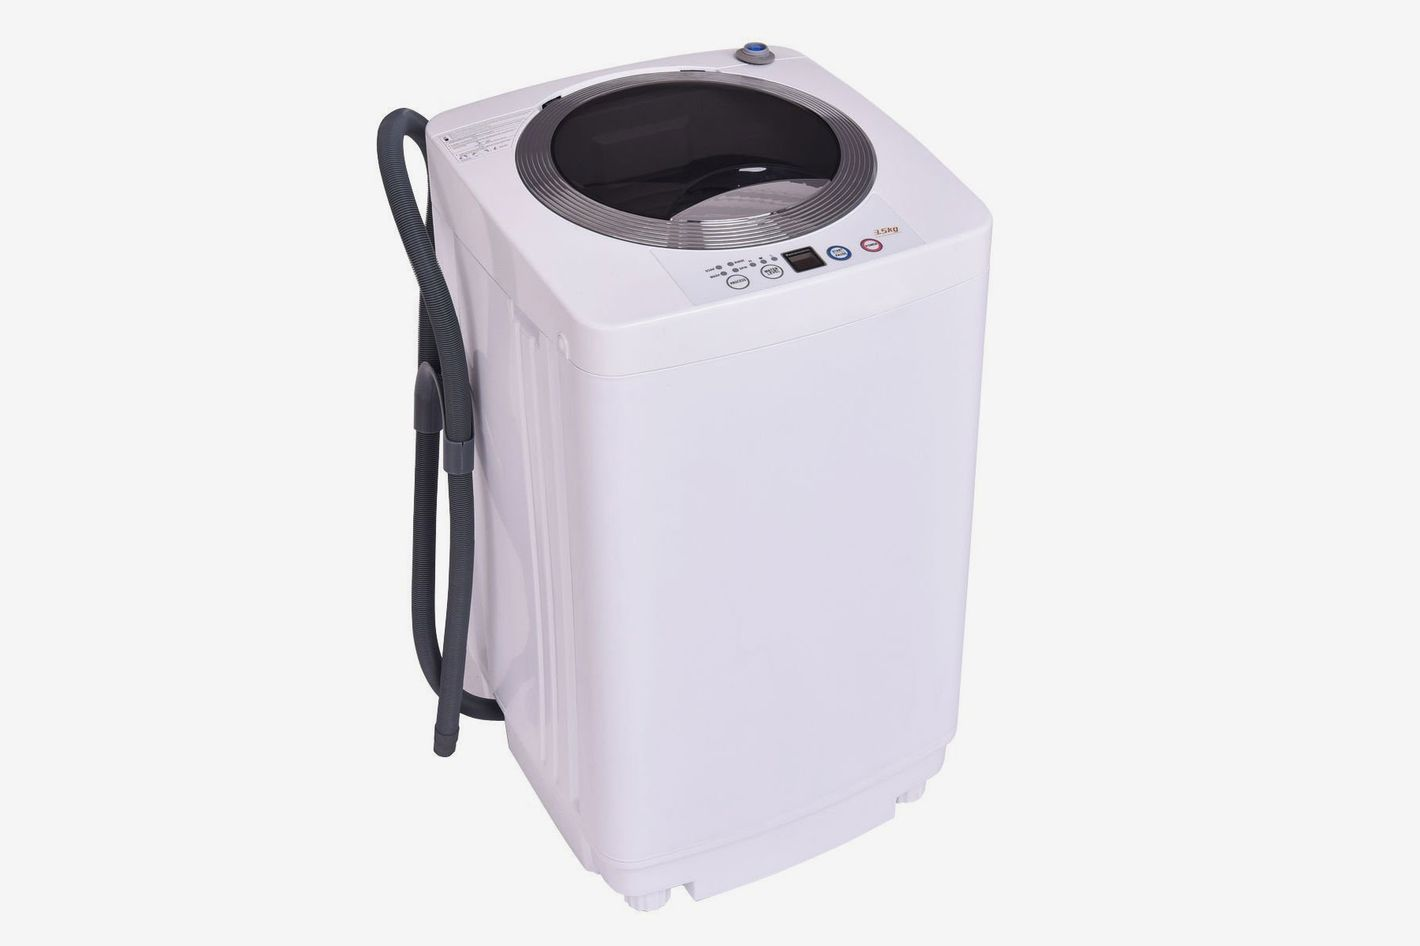 Best Portable Washing Machine For Small Es